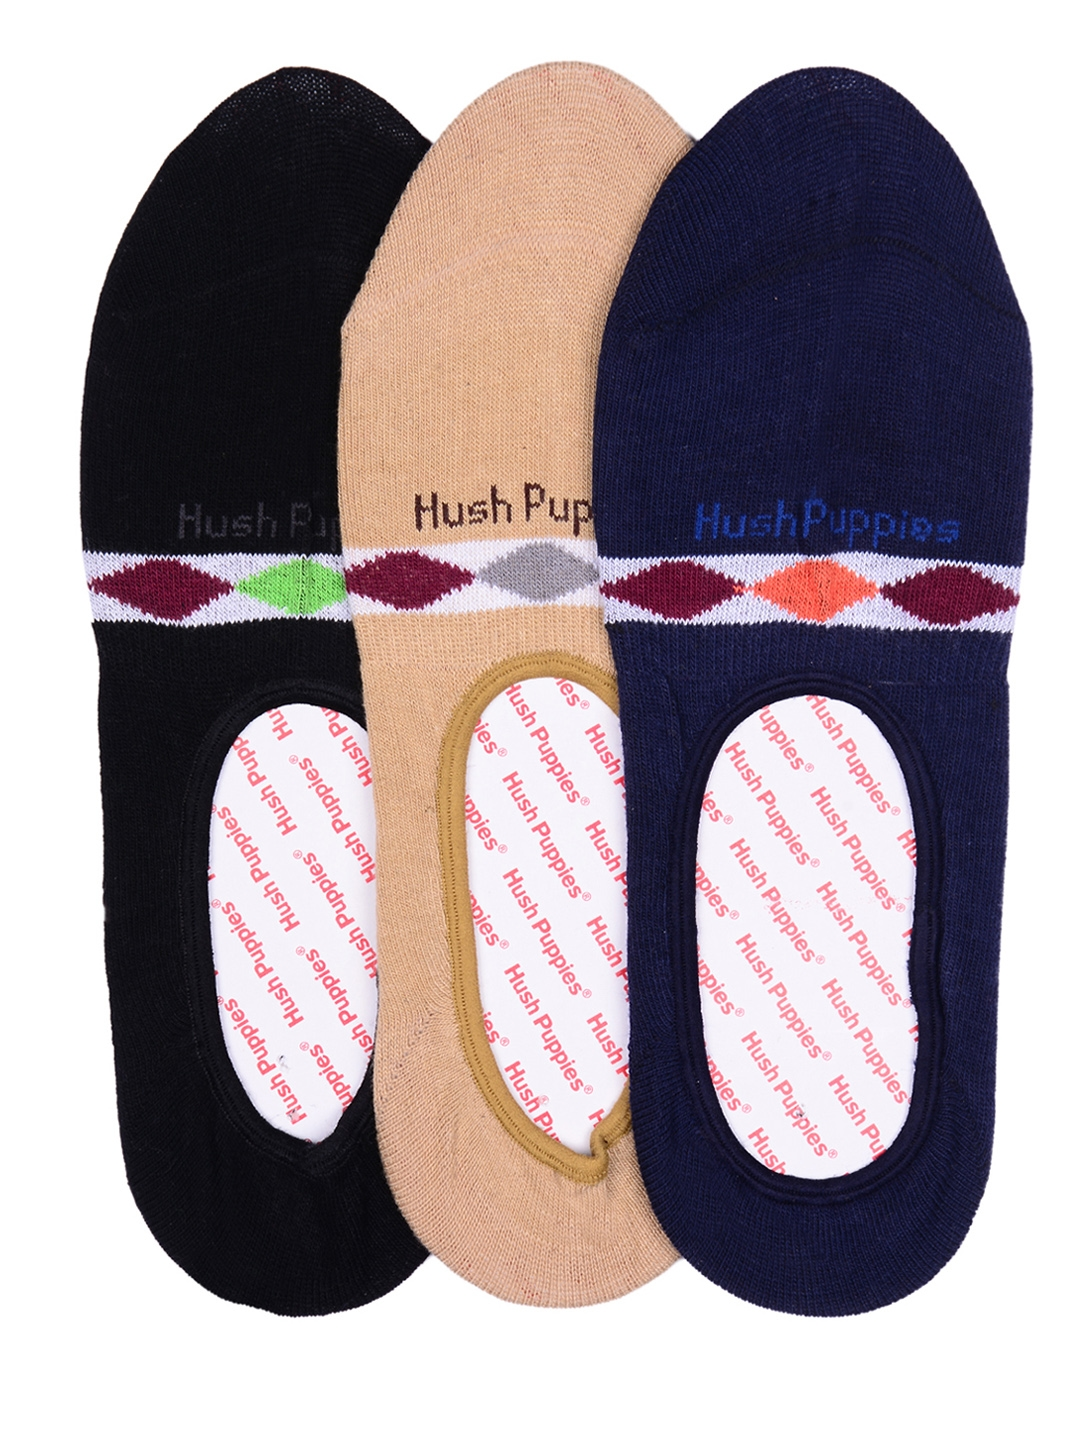 Buy Hush Puppies Women Pack Of 3 Shoe Liners - Socks for Women ... f716ad432